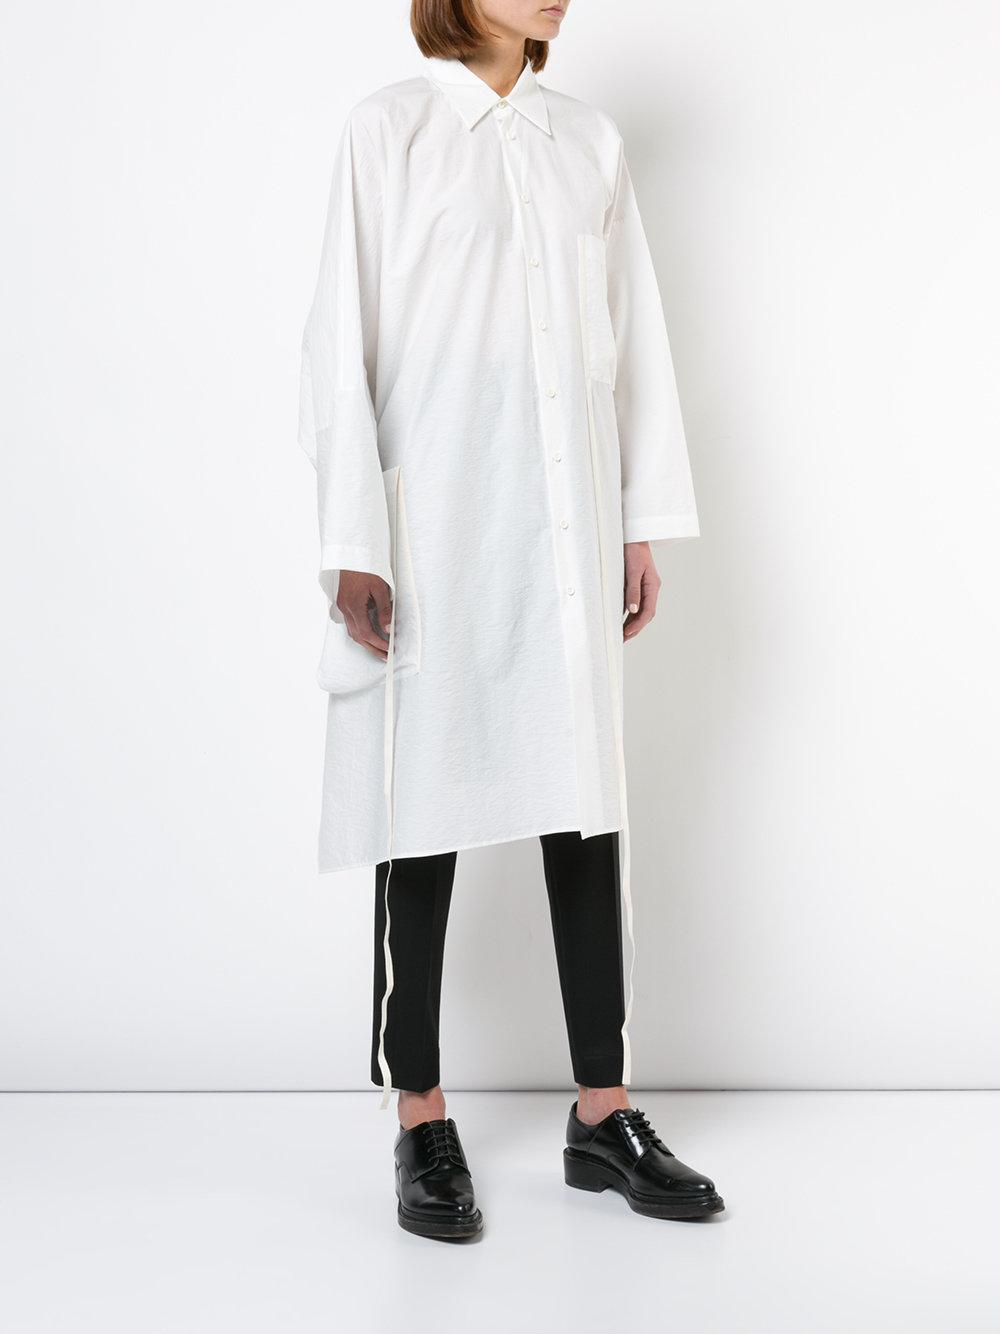 Outlet Great Deals Outlet Low Shipping Fee Uma Wang mid-length longsleeved shirt Get To Buy Cheap Price fHJUPw